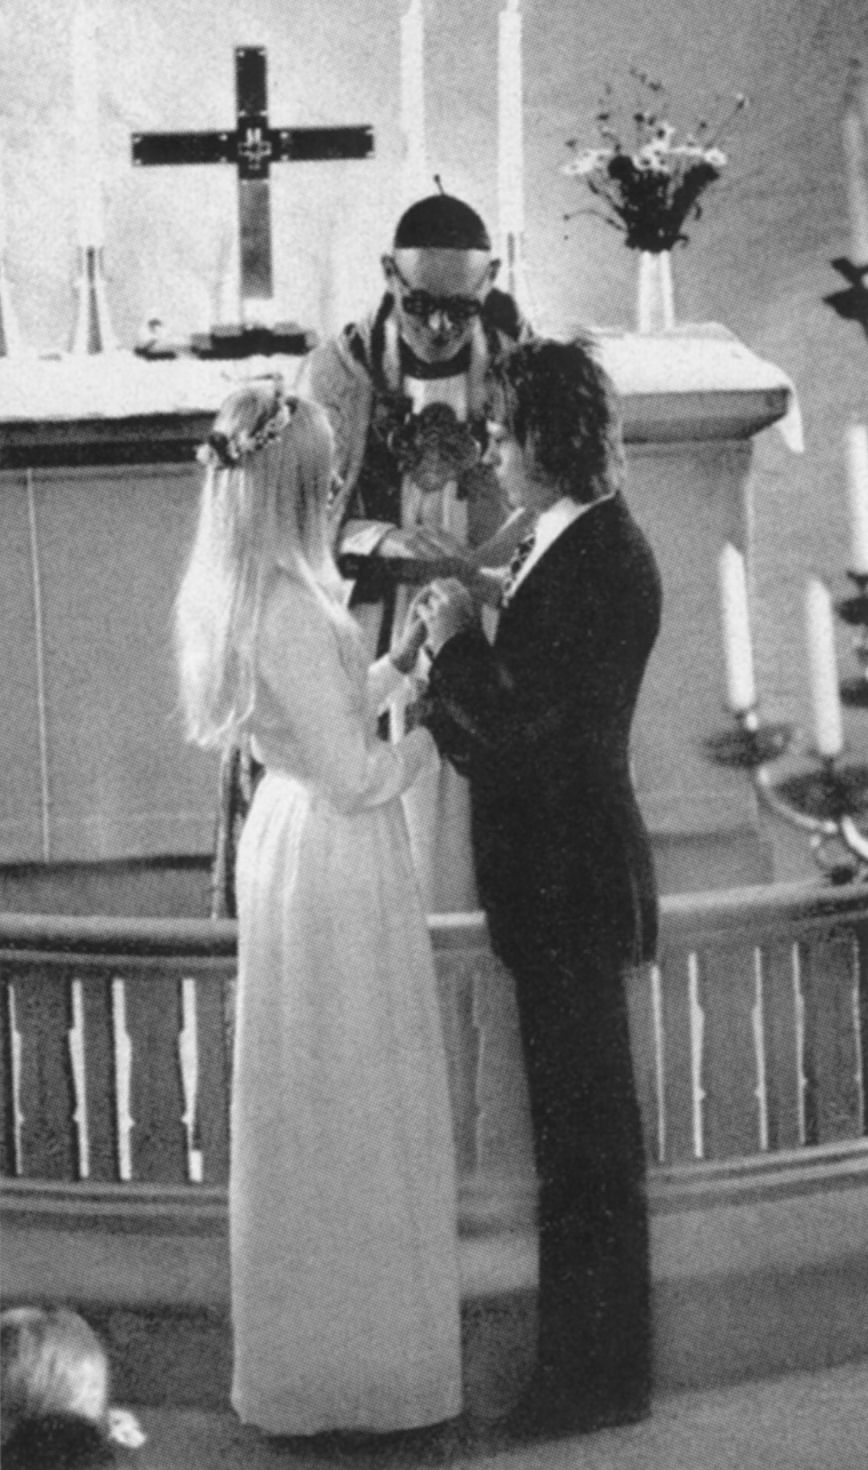 bjorn_agnetha_wedding_say_vows